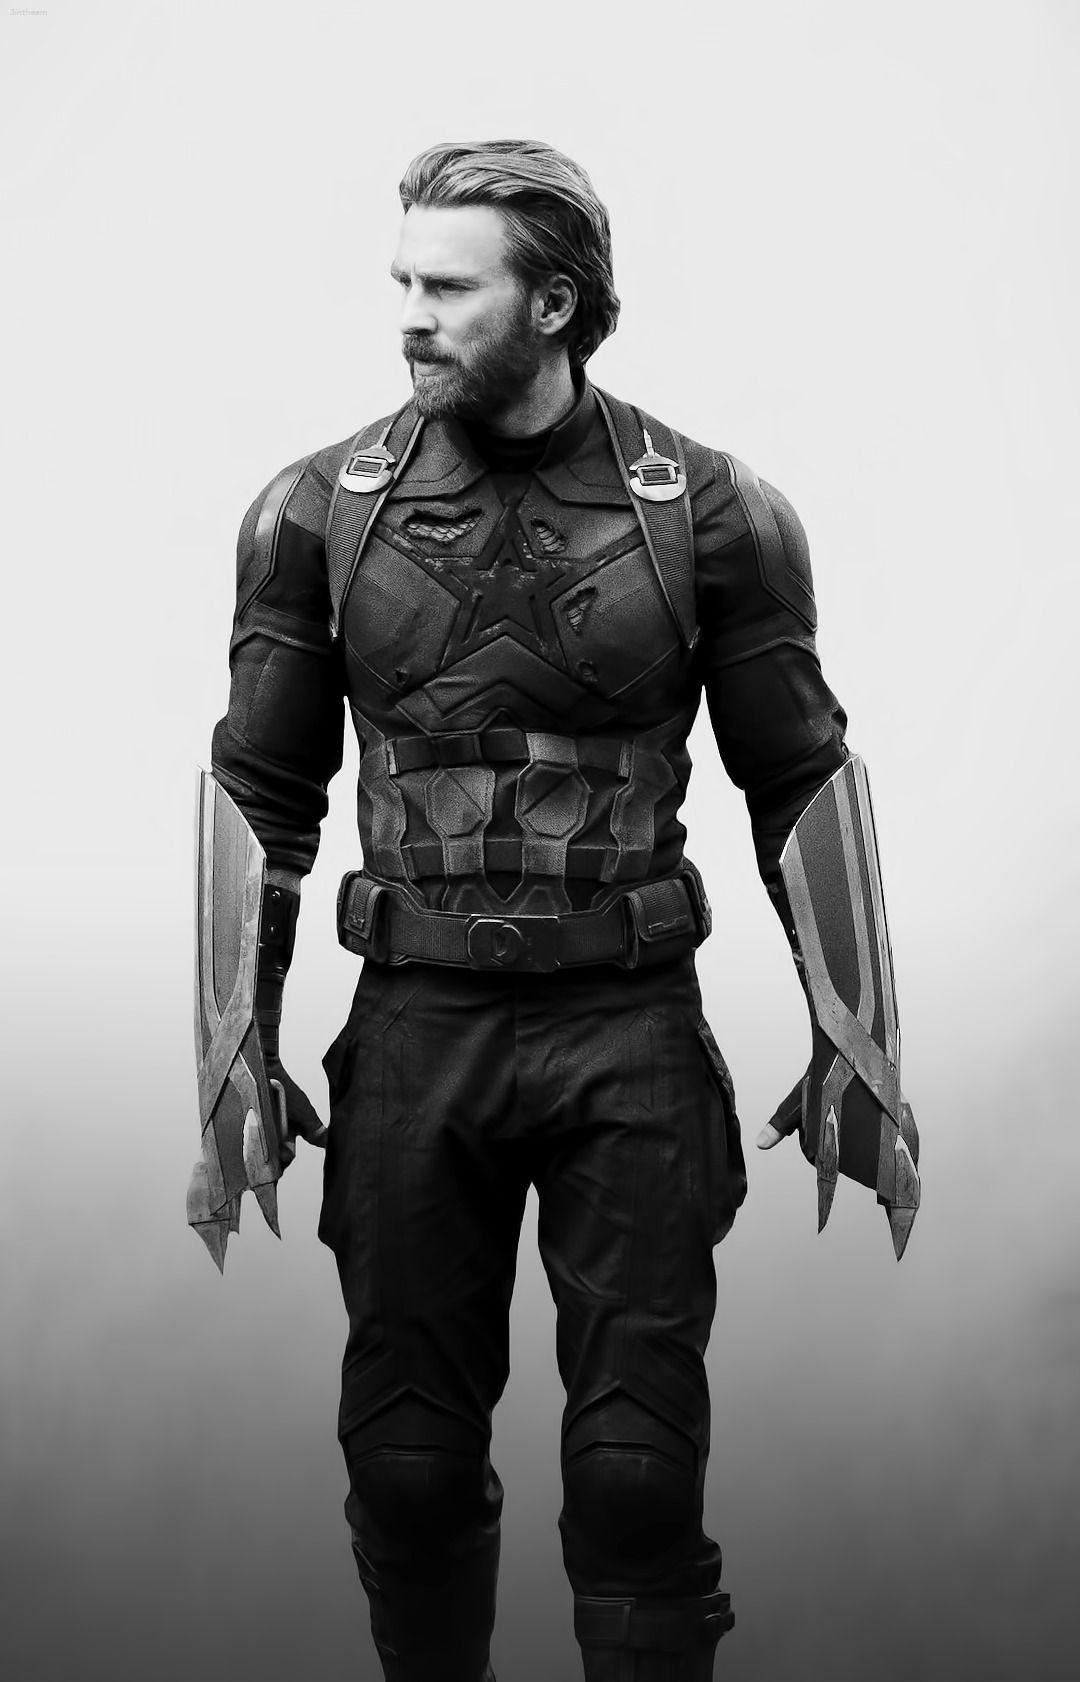 captain america pictures captain america concept art takes us closer to the first pictures captain america